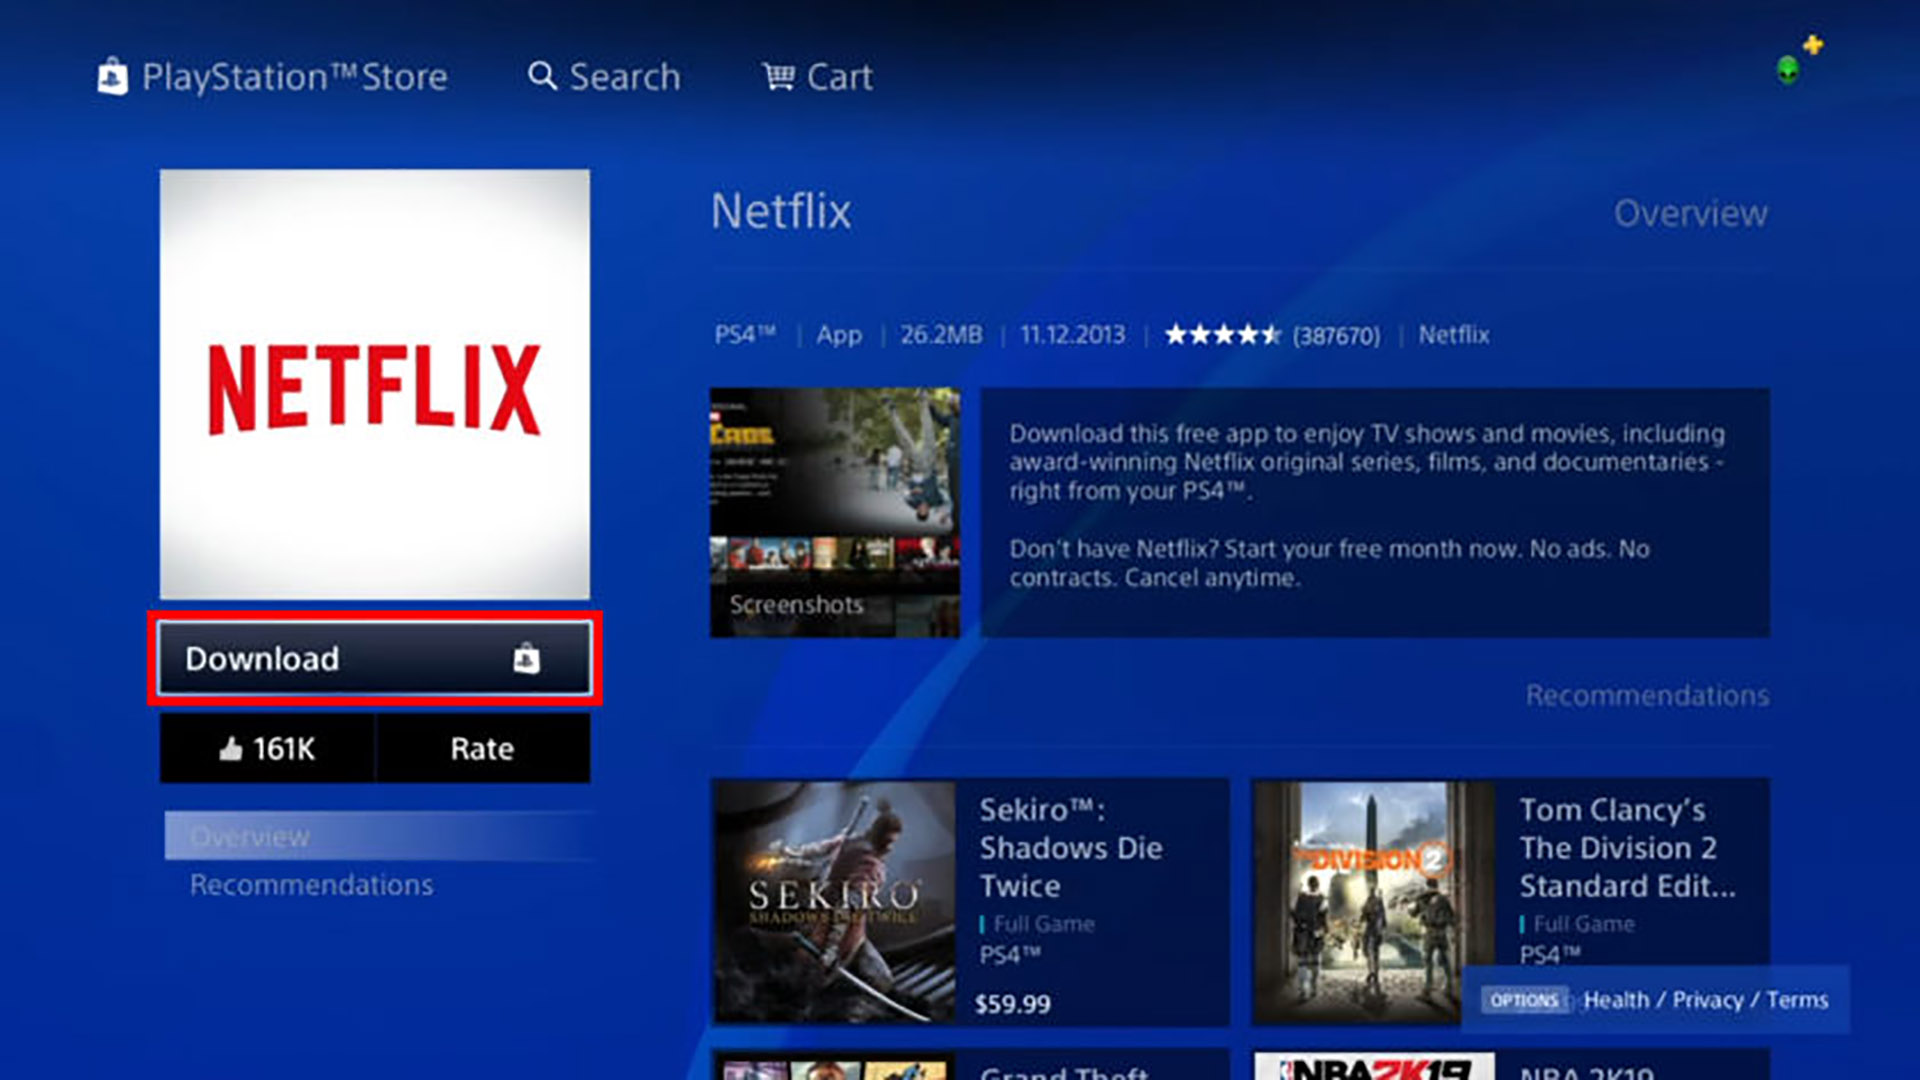 Netflix on PlayStation 4